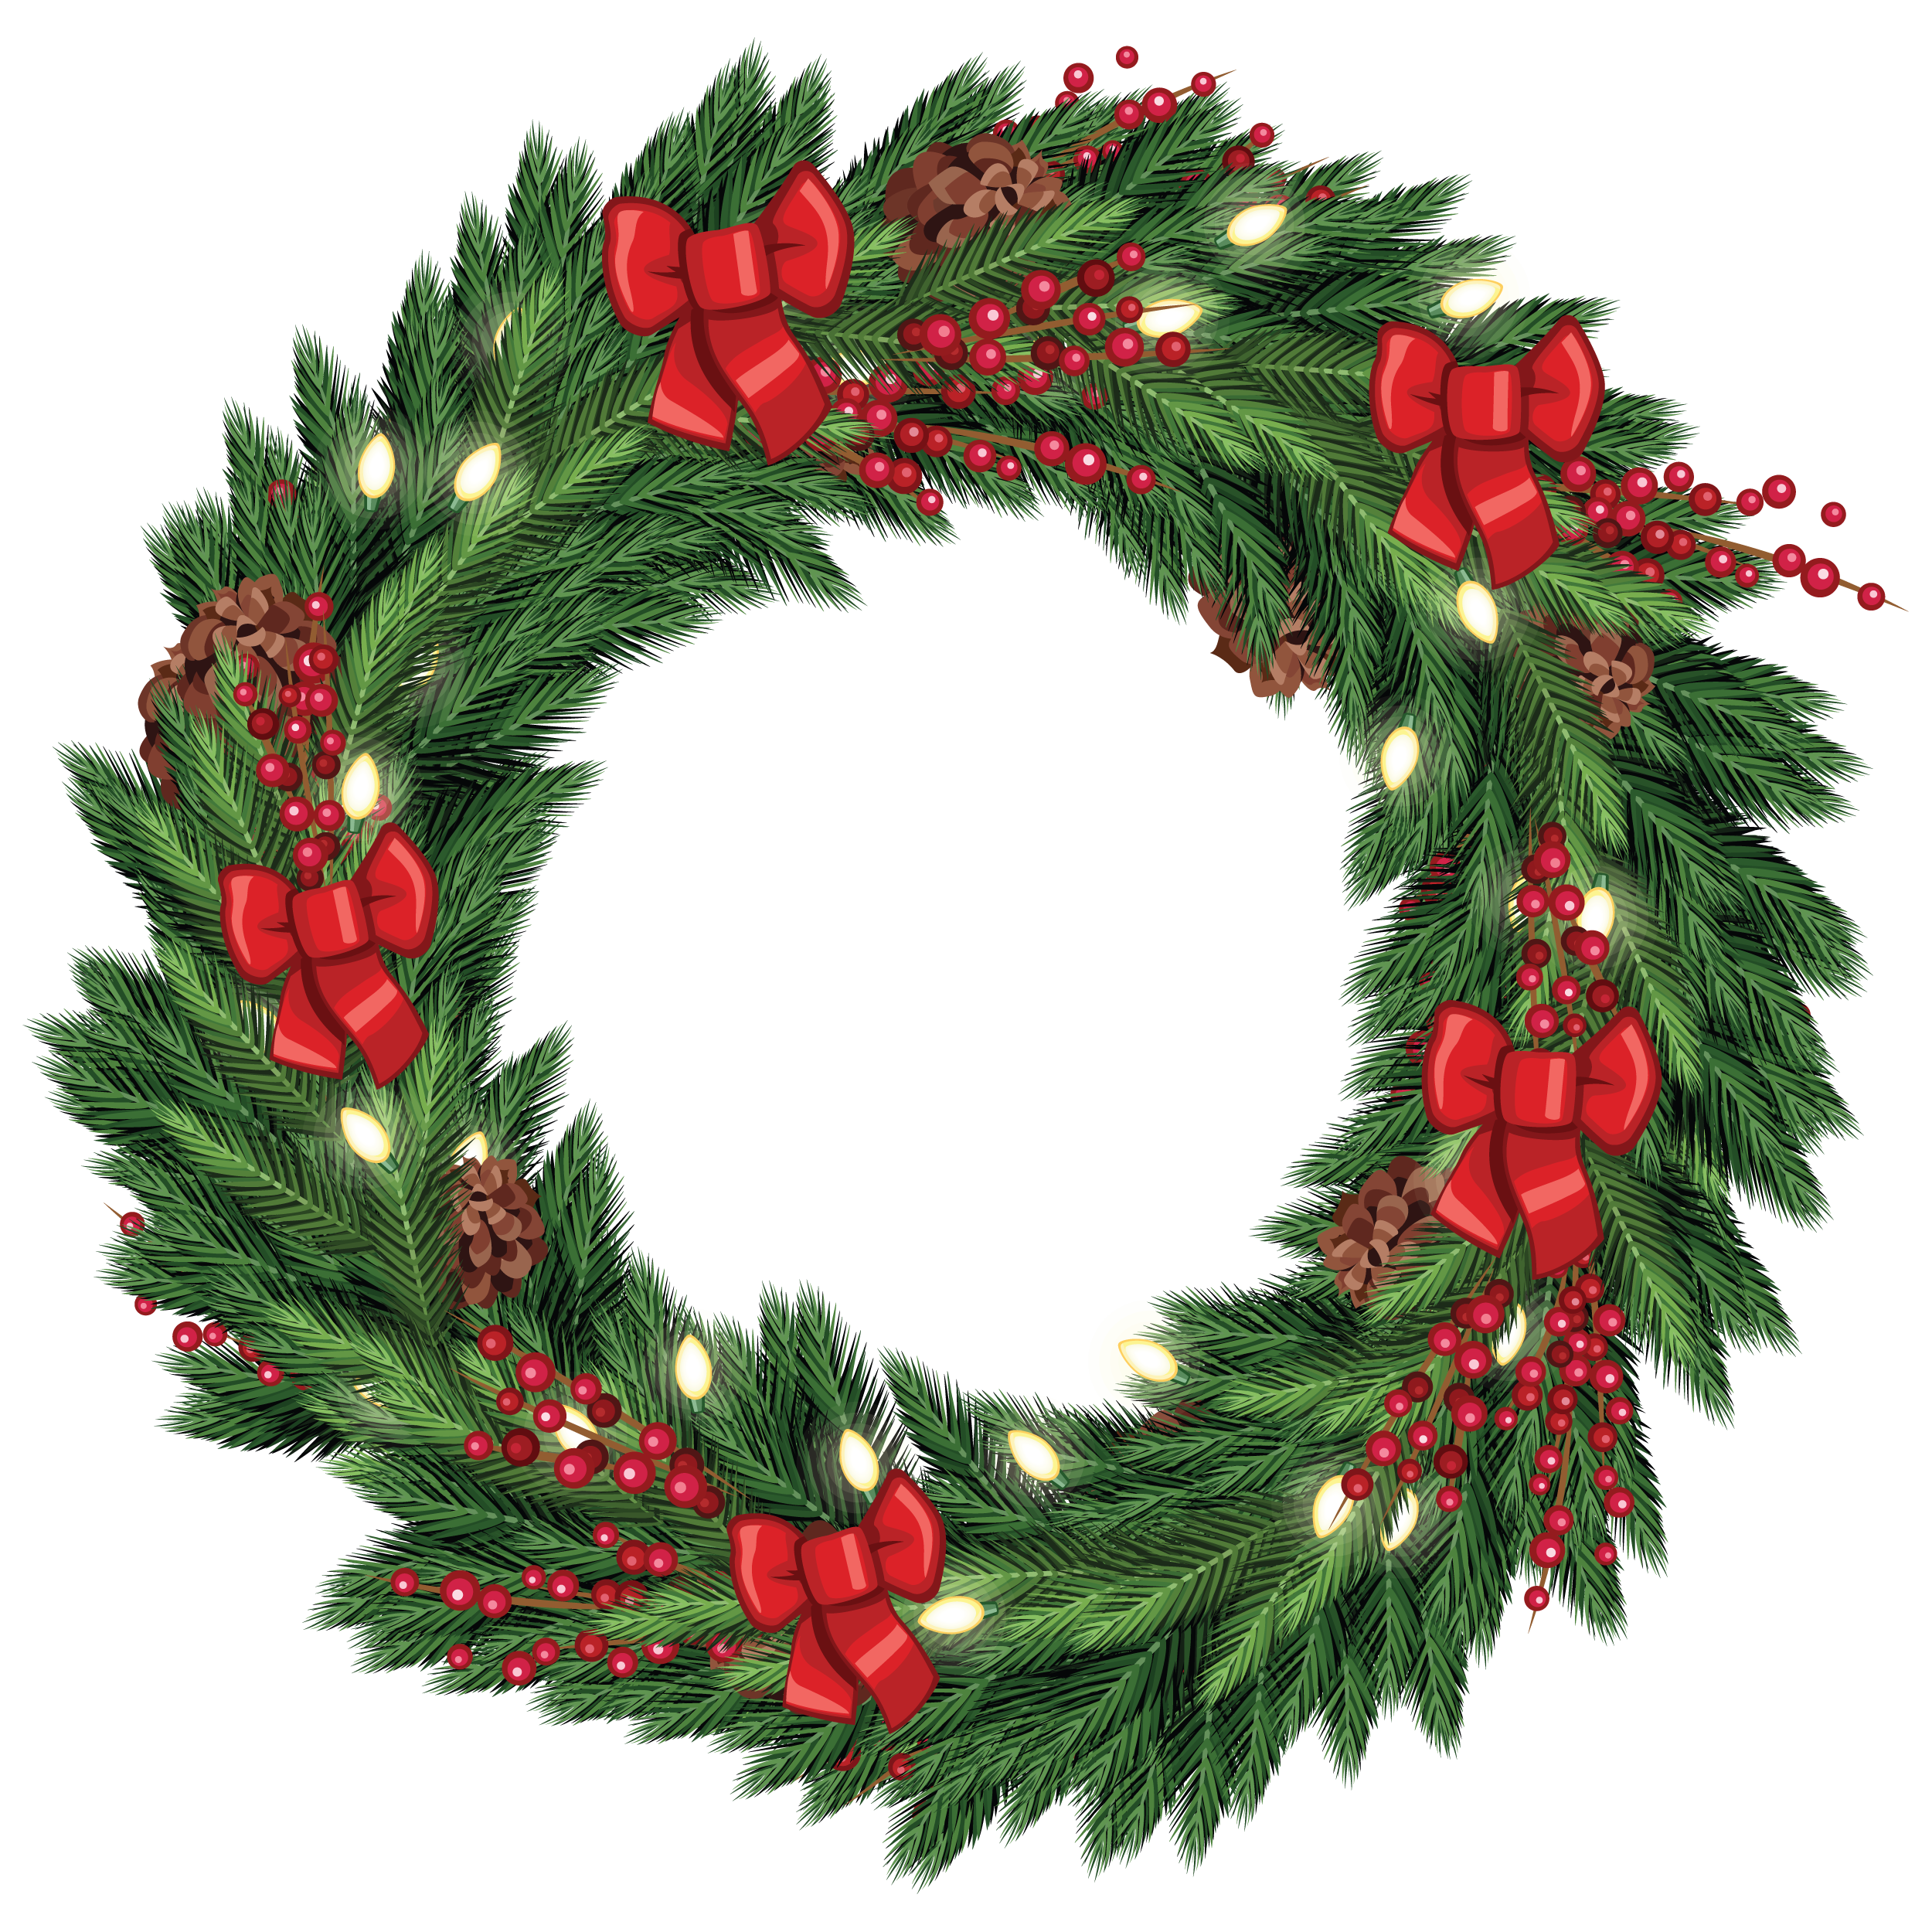 Free Christmas Wreath Graphic From Tradigitalart Christmas Wreaths Christmas Card Crafts Christmas Sheets